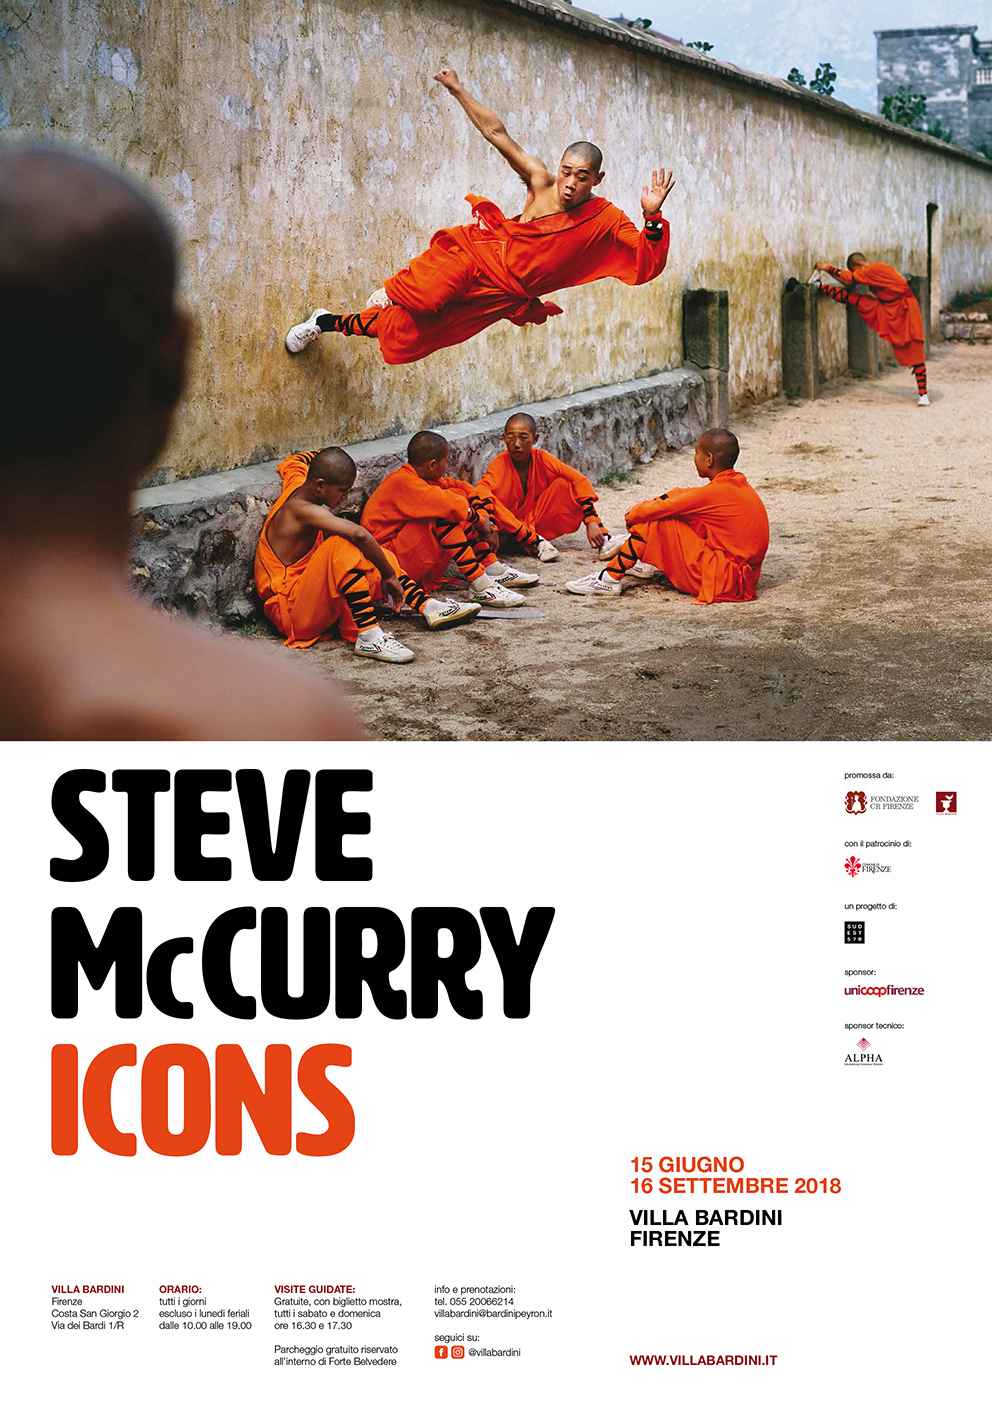 Steve McCurry Icons Firenze